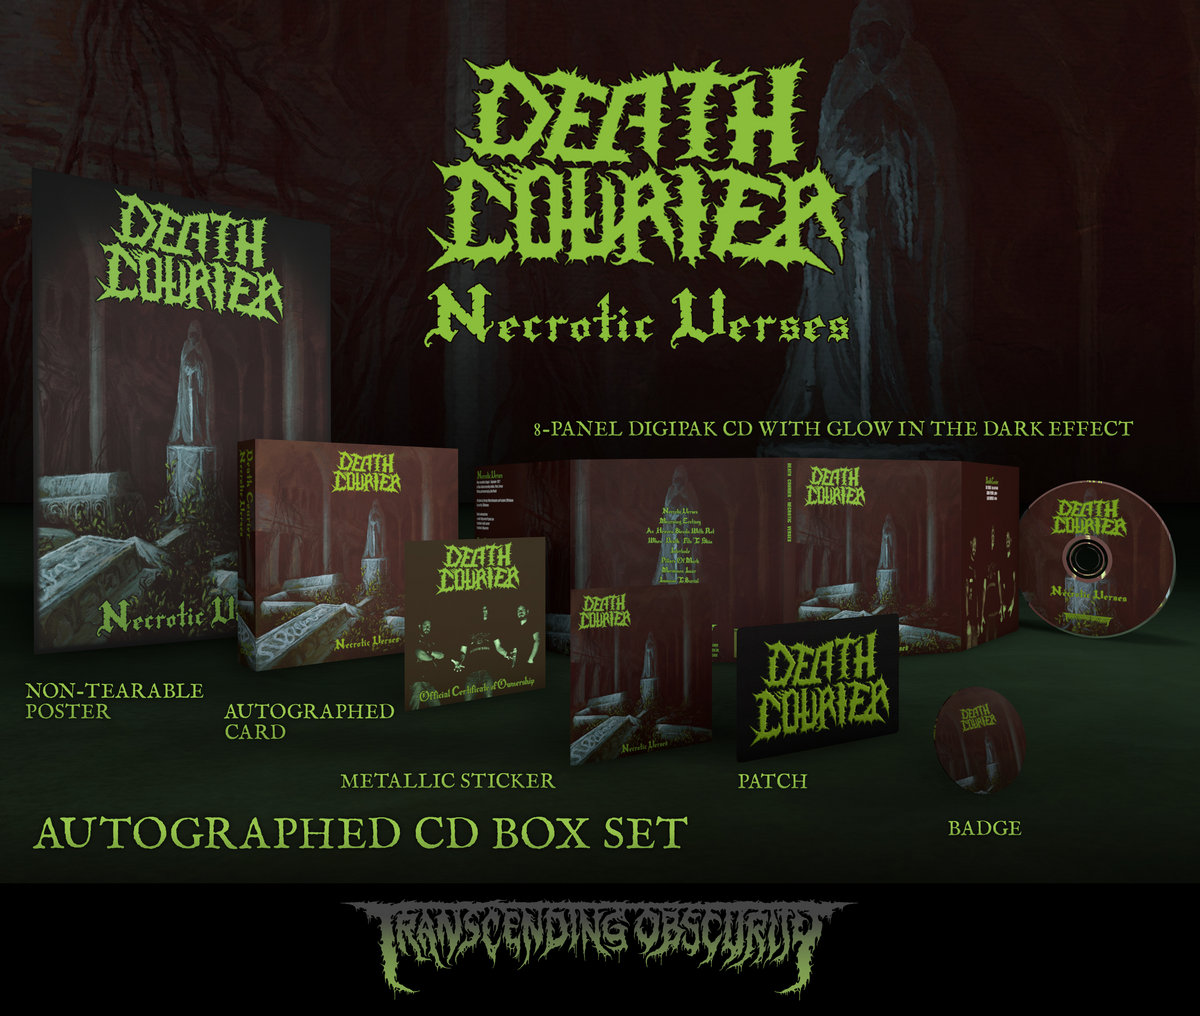 DEATH COURIER Metallic Green-embossed Autographed CD Box Set (Limited to 100)